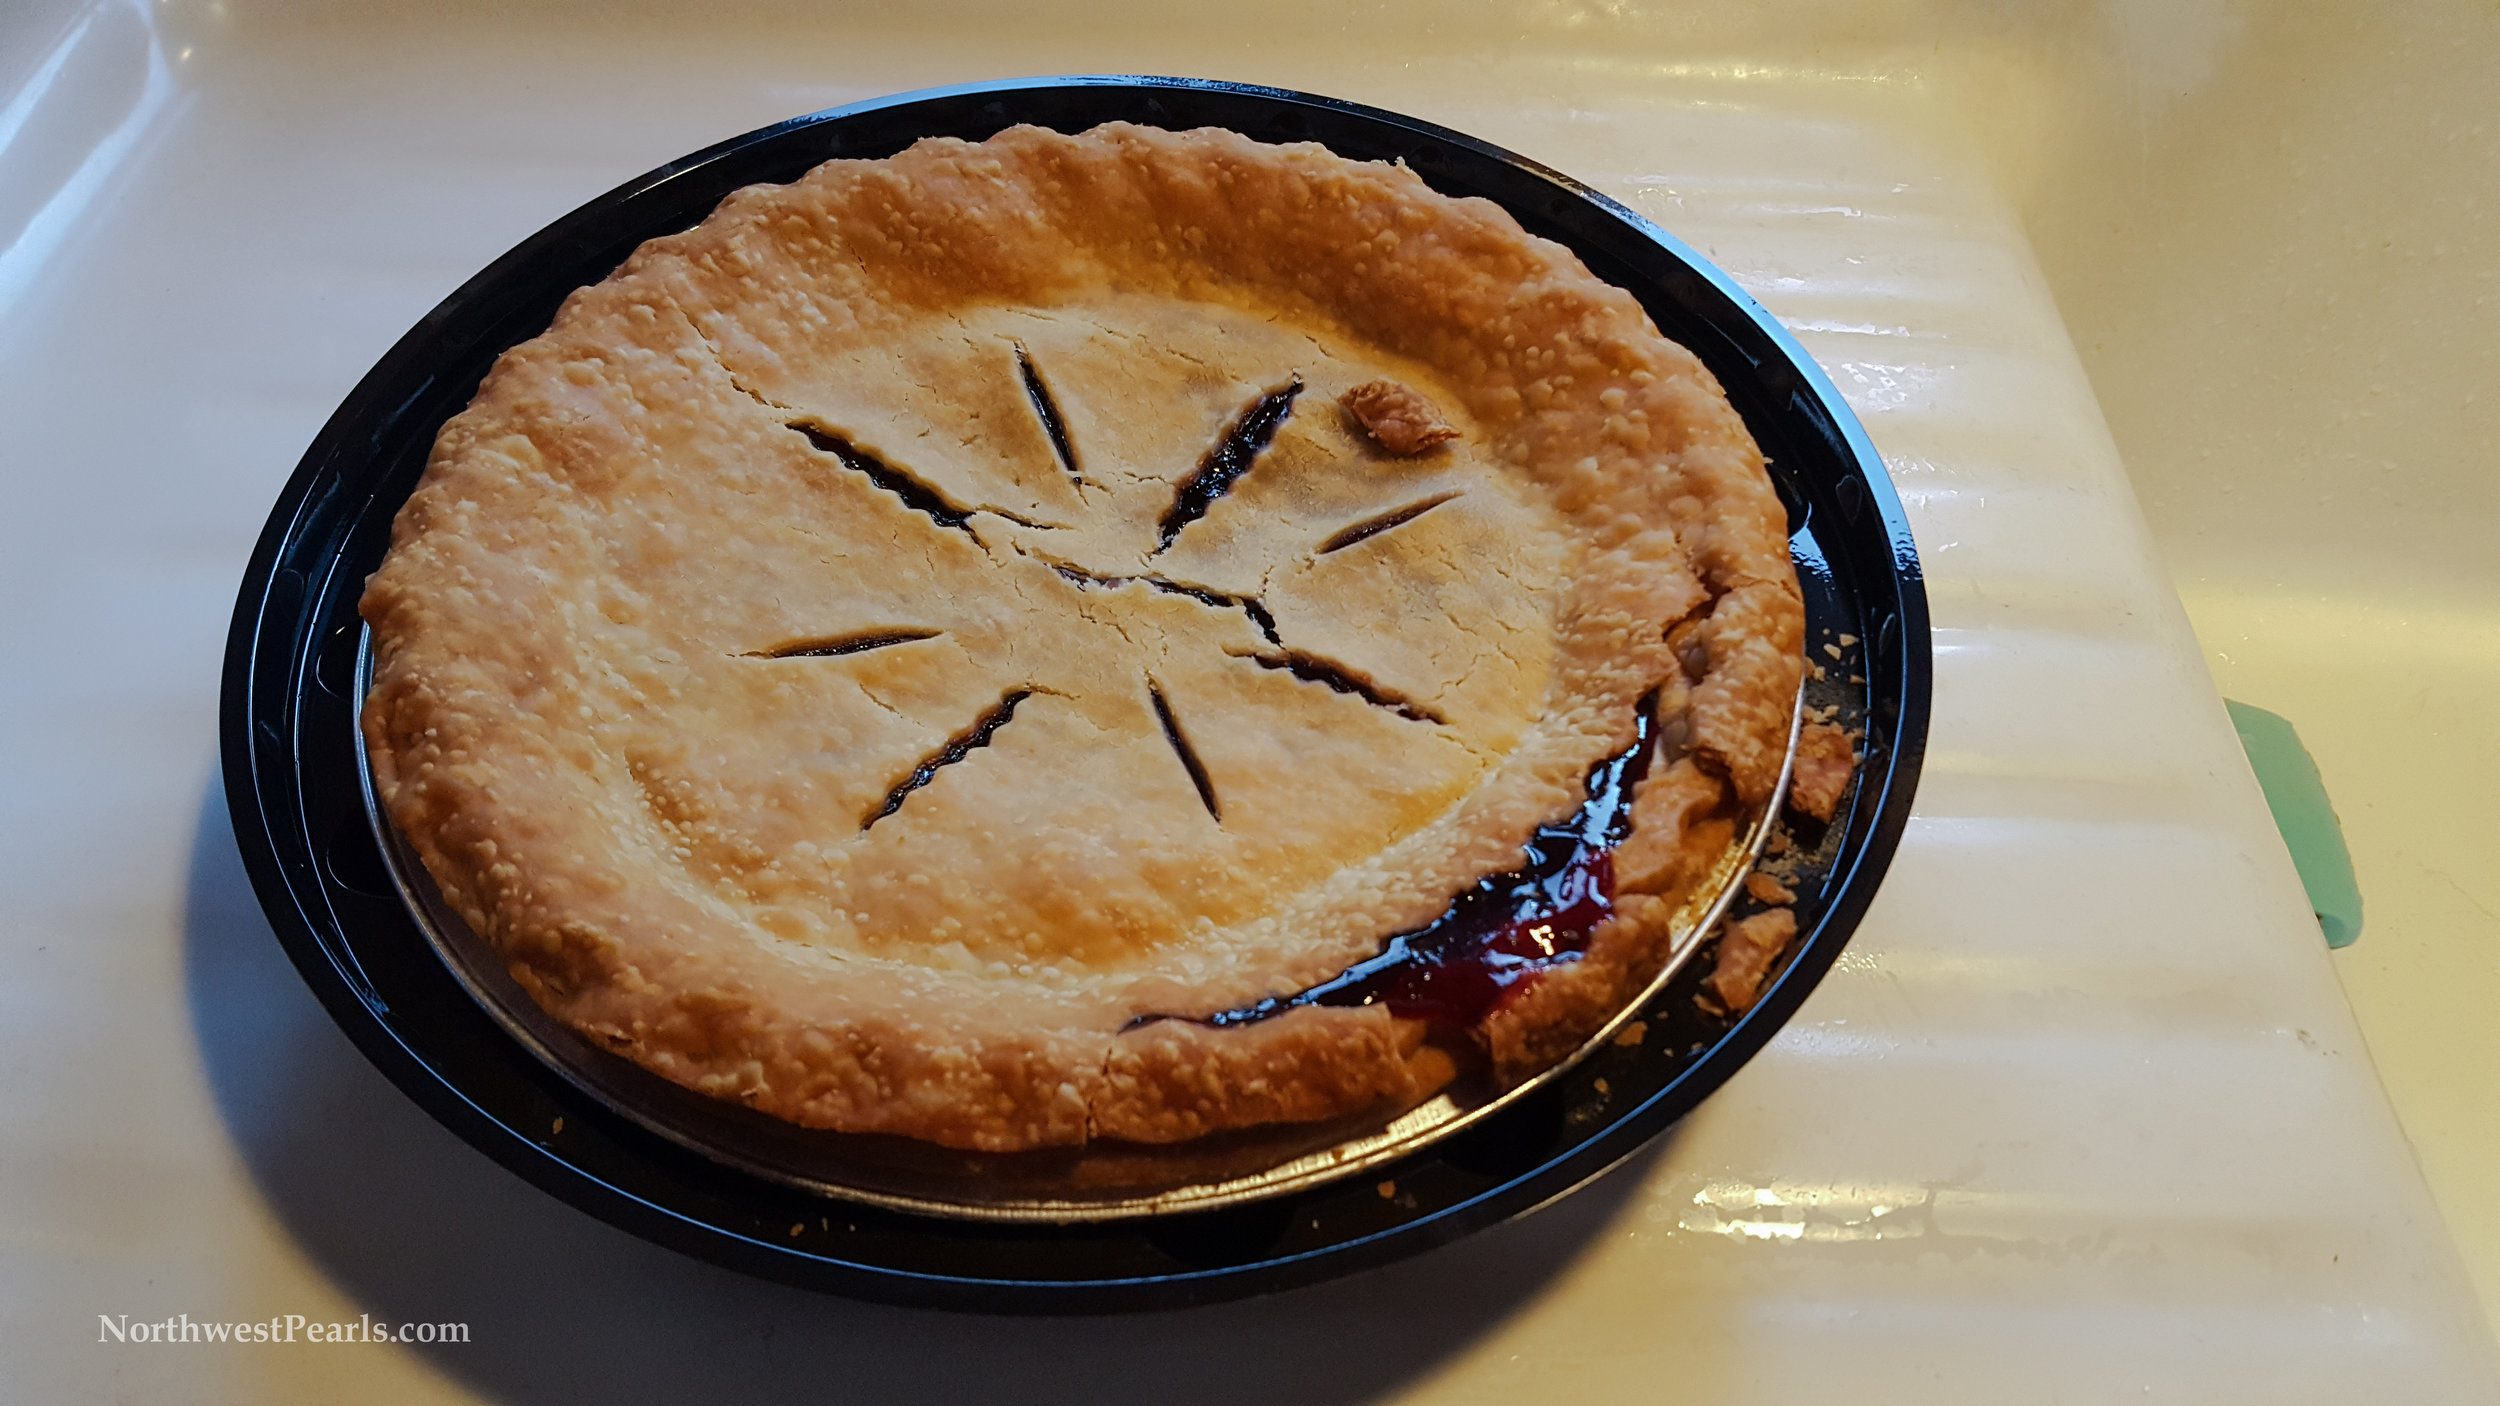 Northwest Pearls: Huckleberry Pie